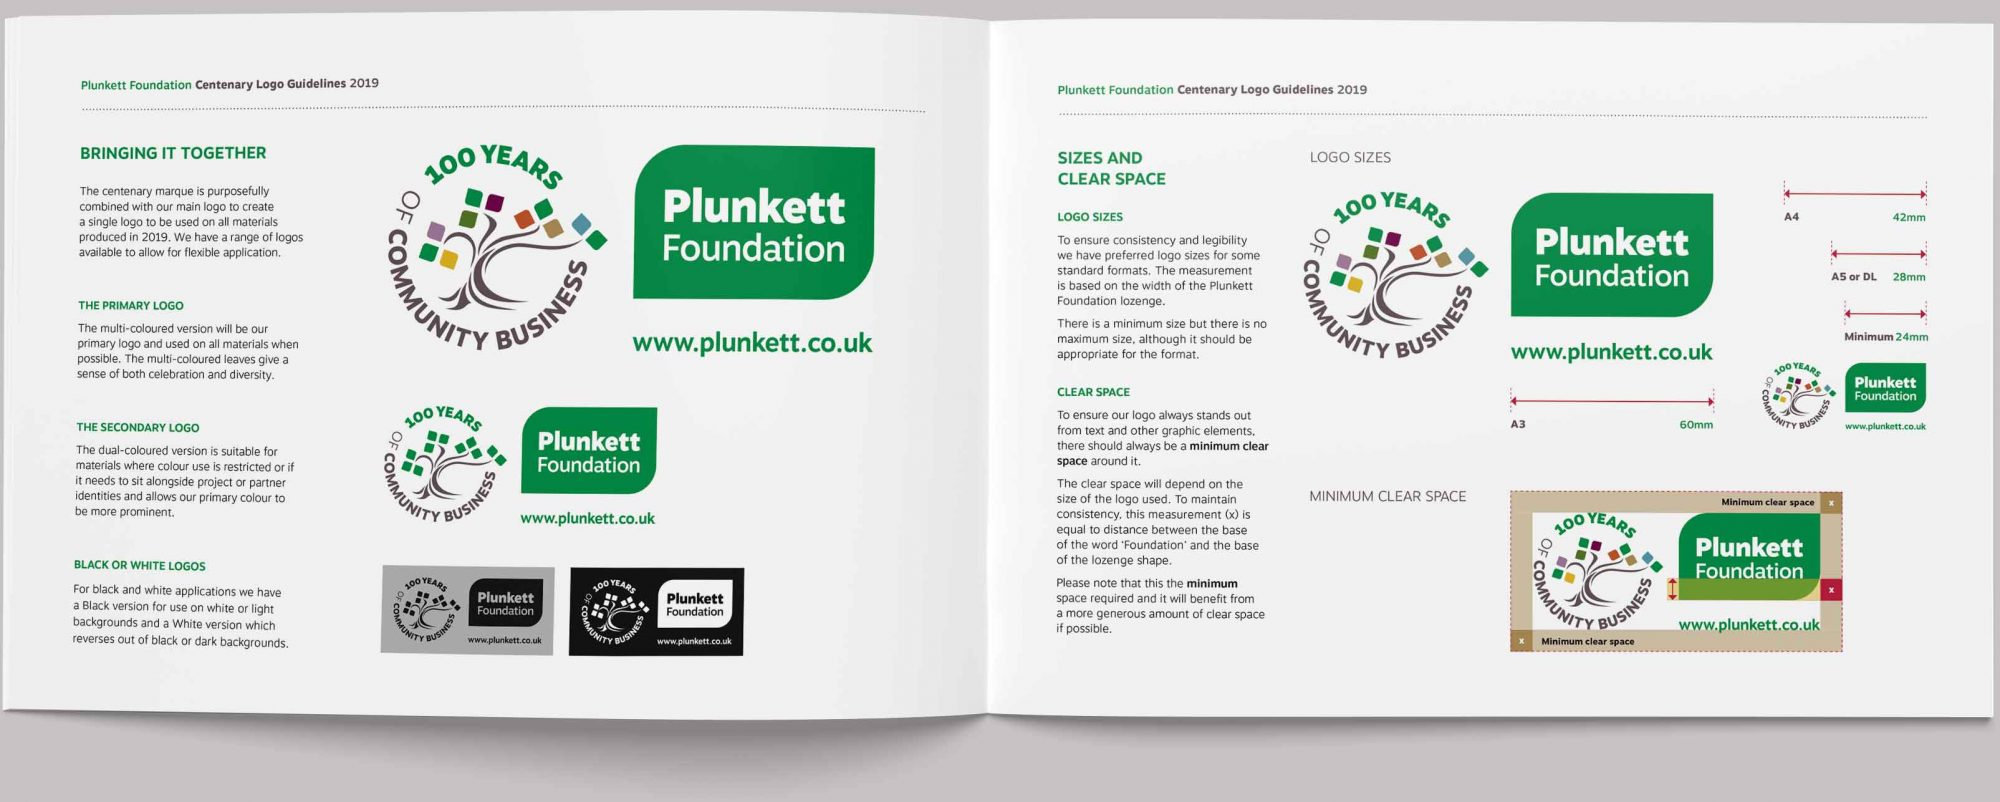 Plunkett Foundation 100 years logo guides